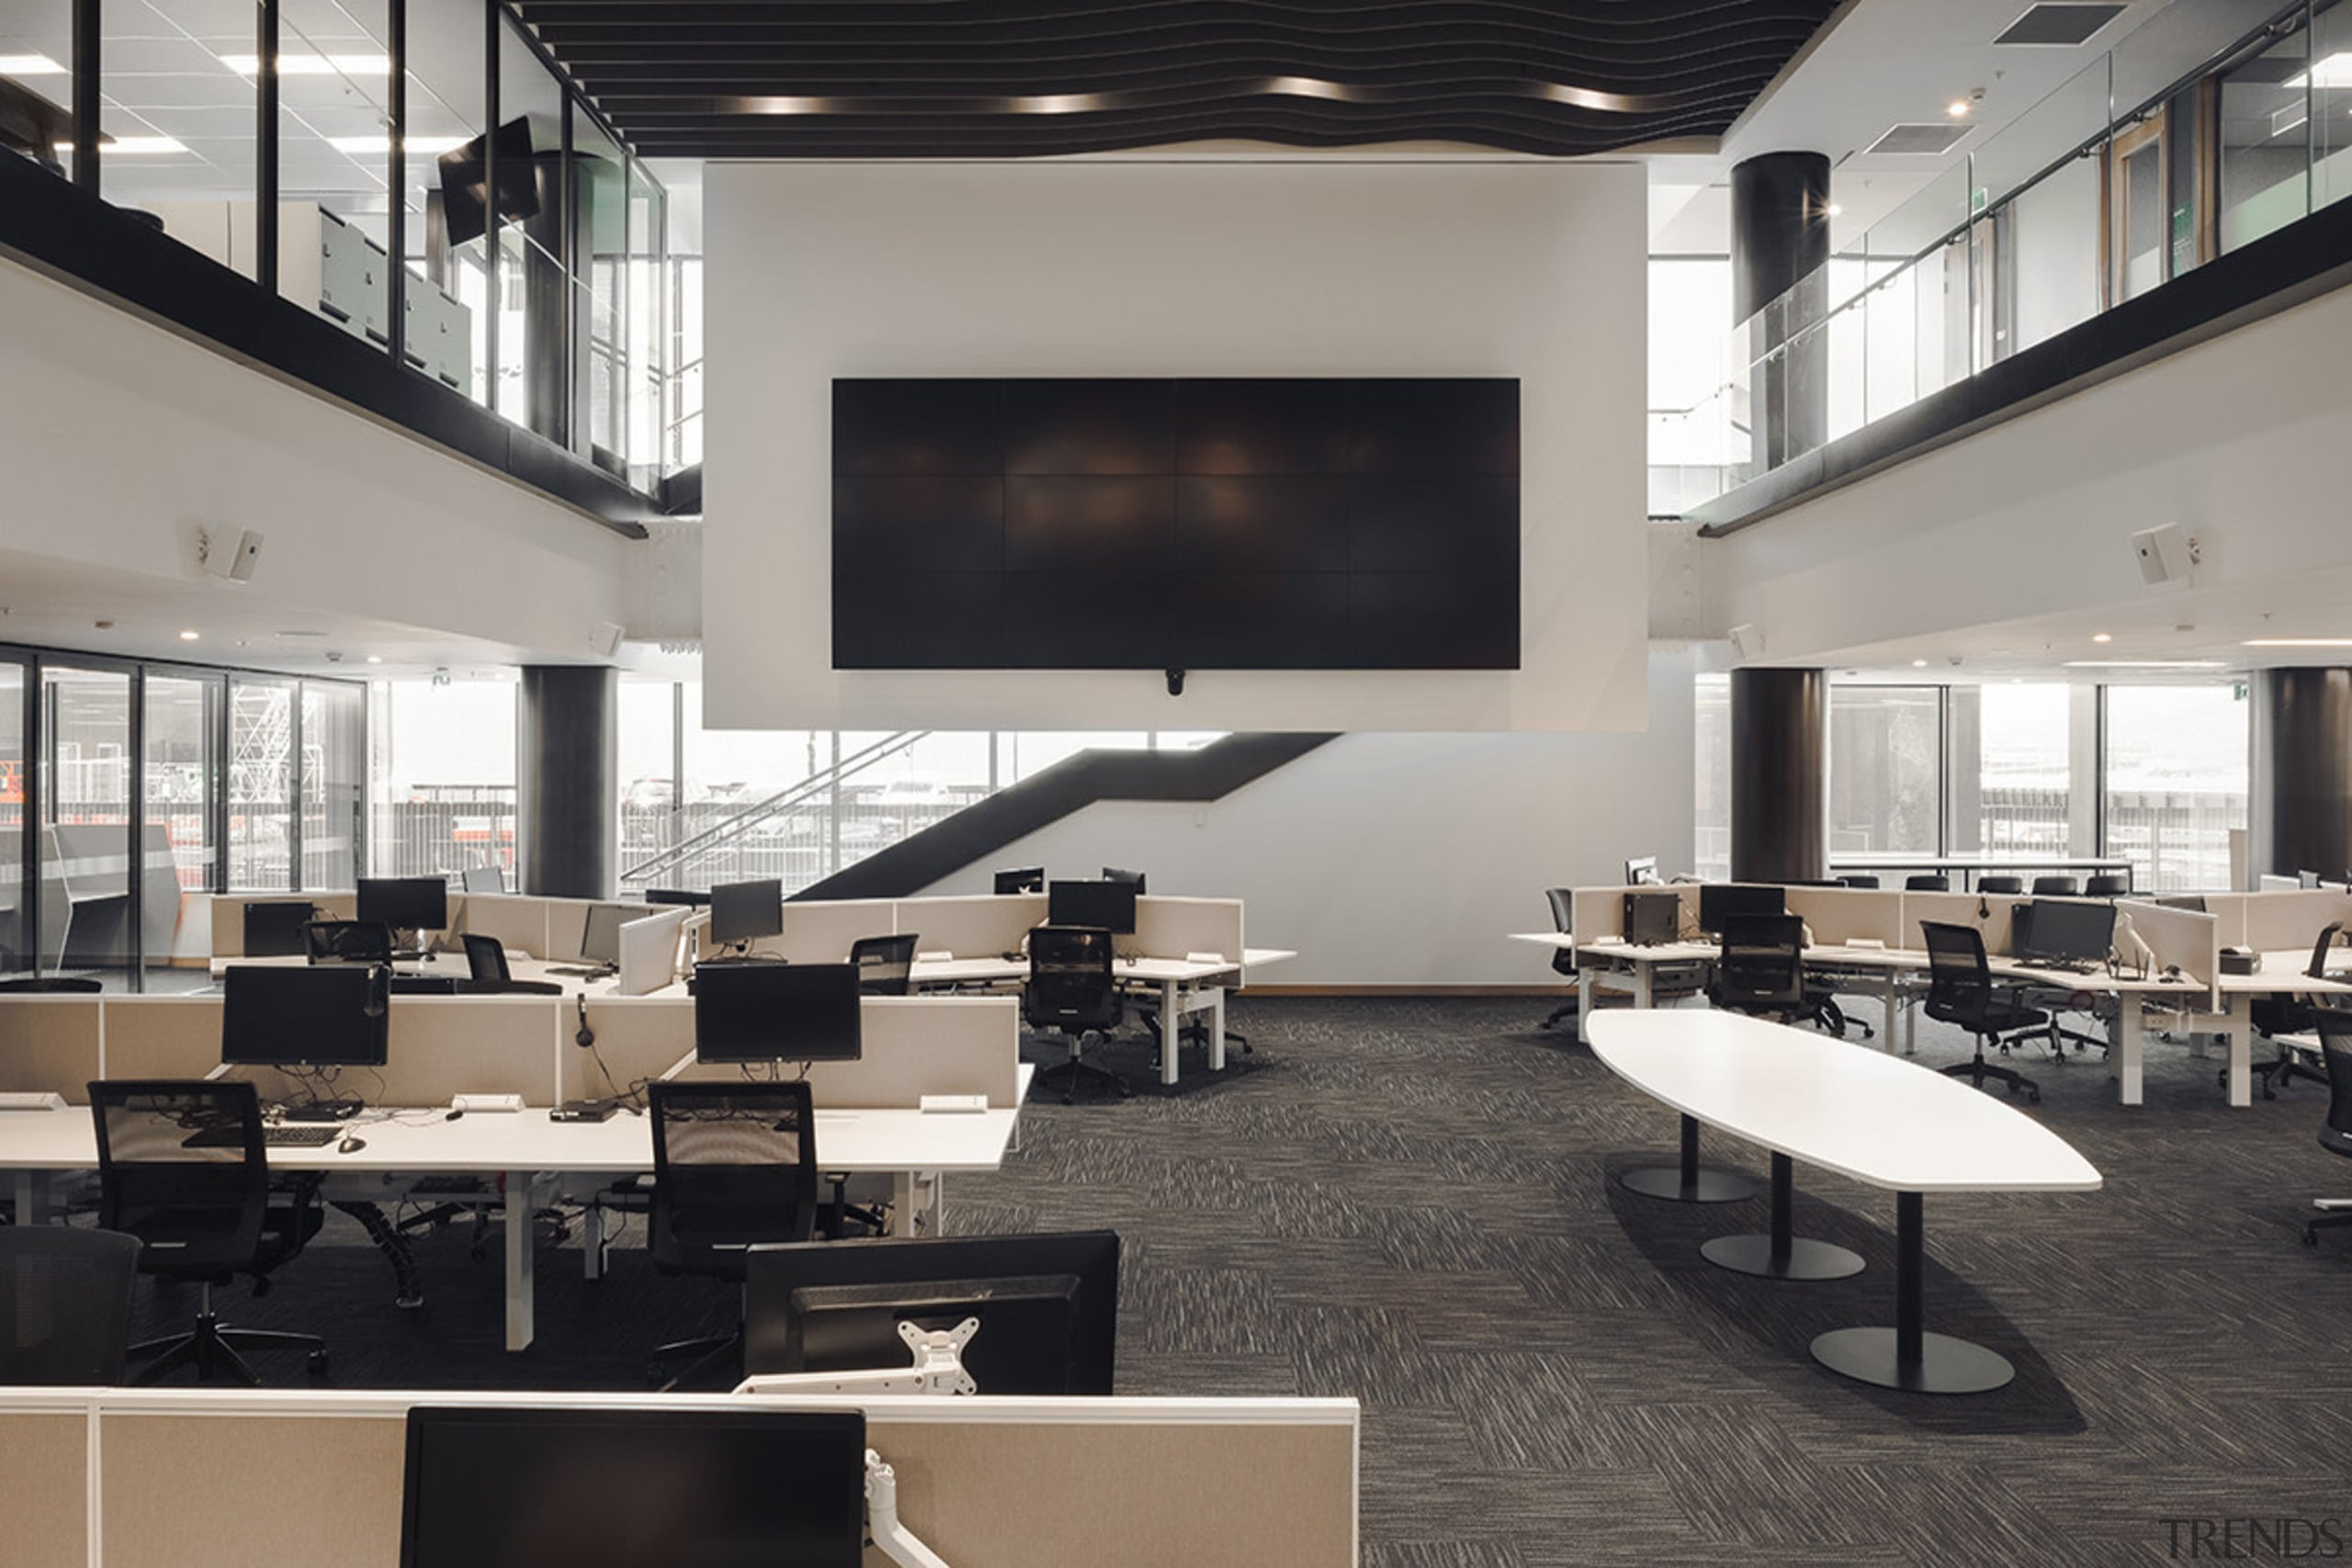 The emergency services building emergency operations centre within classroom, conference hall, furniture, institution, interior design, office, table, gray, black